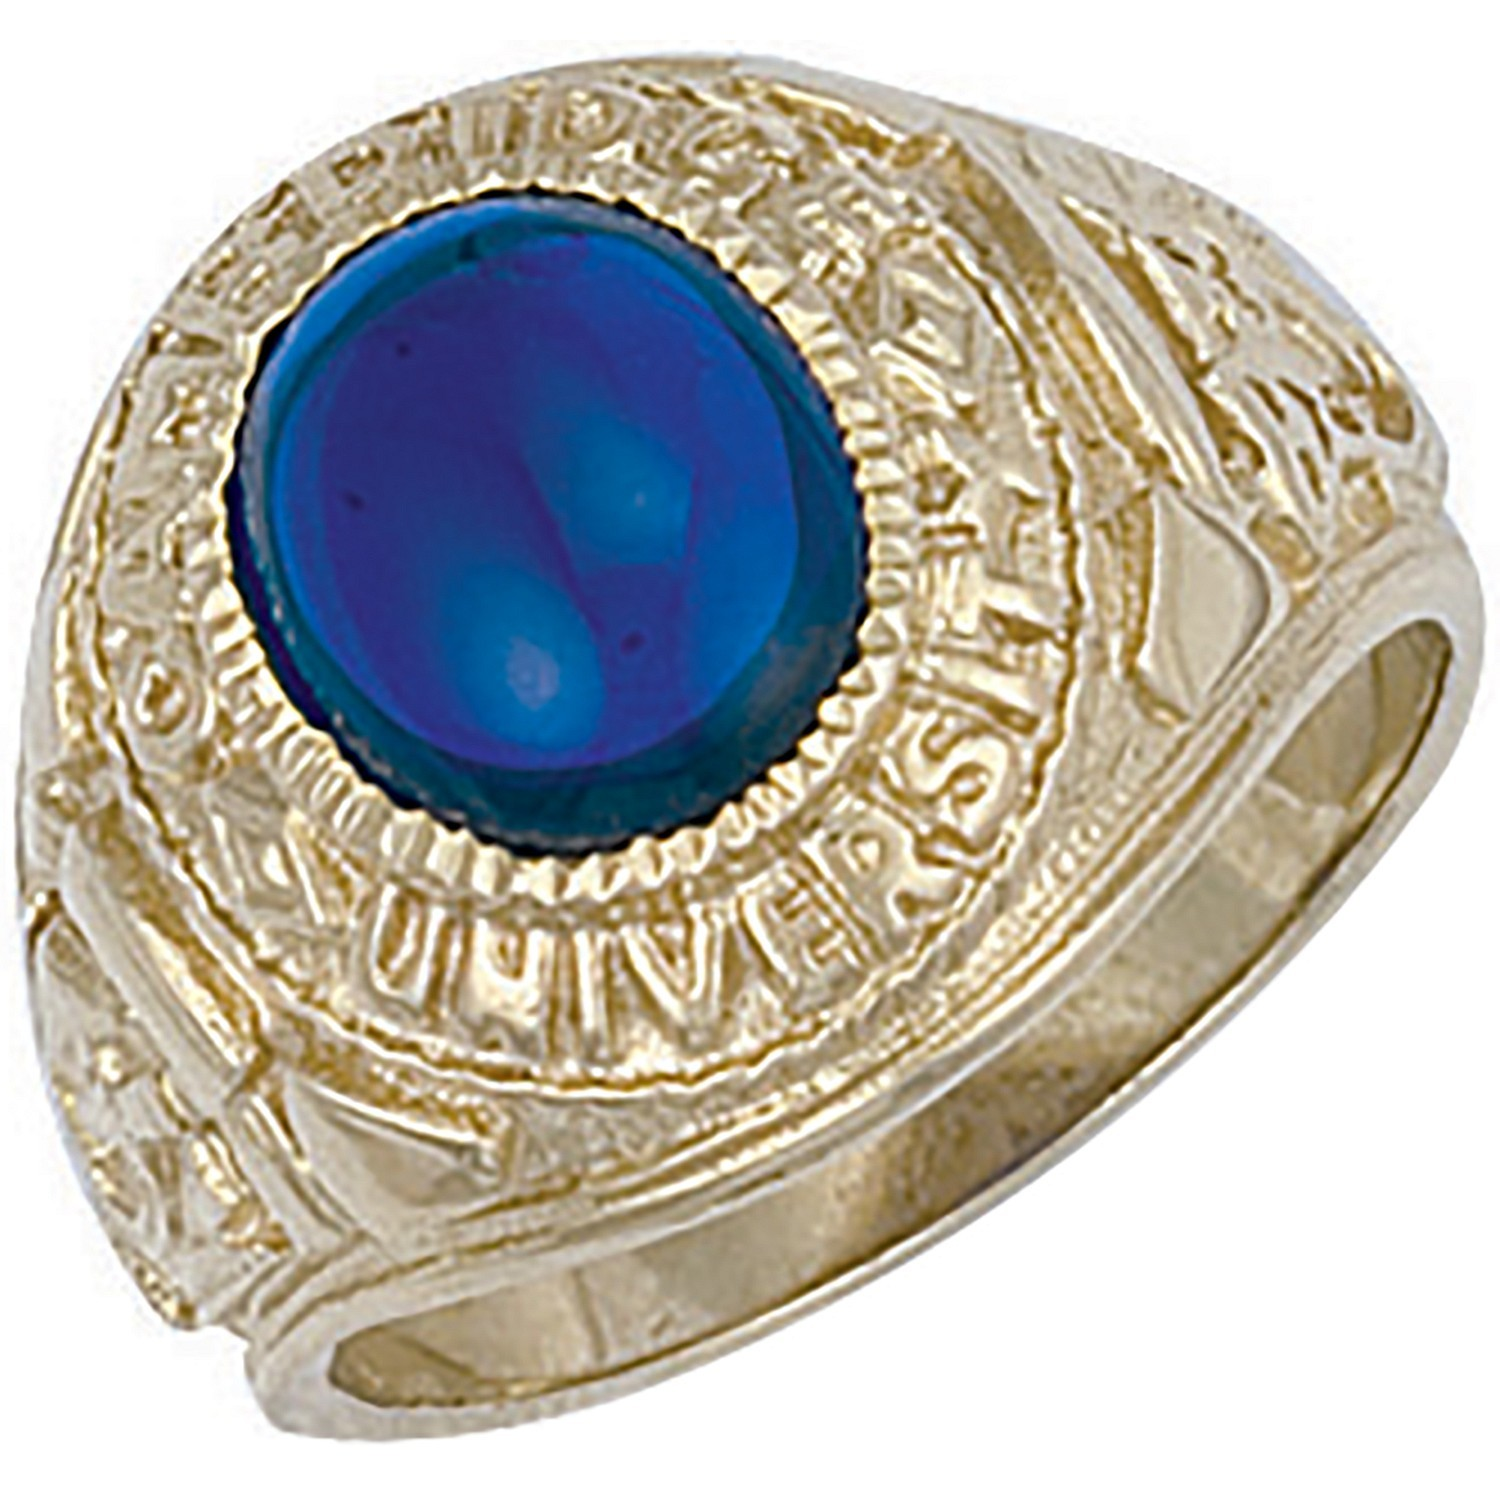 Y/G Blue Cabochon University/College Ring